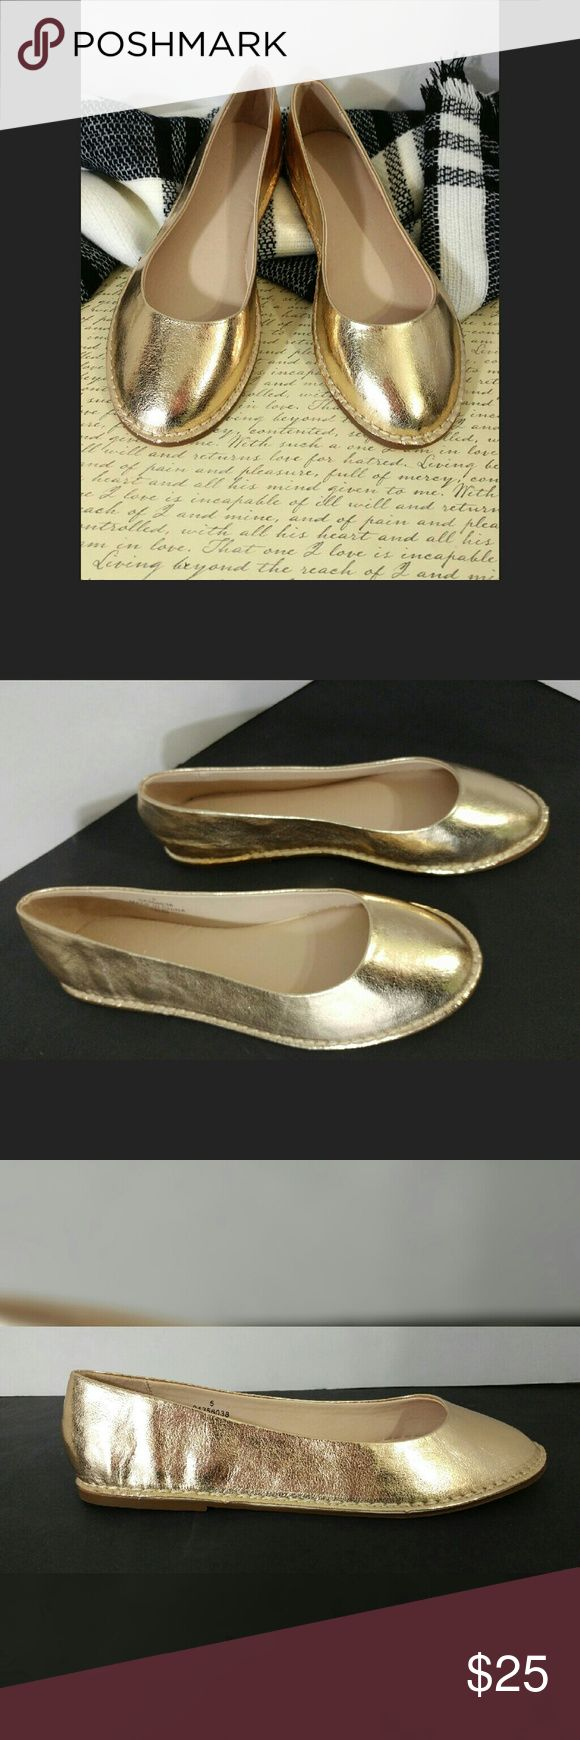 """New ASOS Size 7 Metallic Gold Flats Condition: New with no box or tag  Size: 7/US, GB/5, EU/38  Metallic gold, slip on flats, 1/4"""" heel, stitching on outside ASOS Shoes Flats & Loafers"""